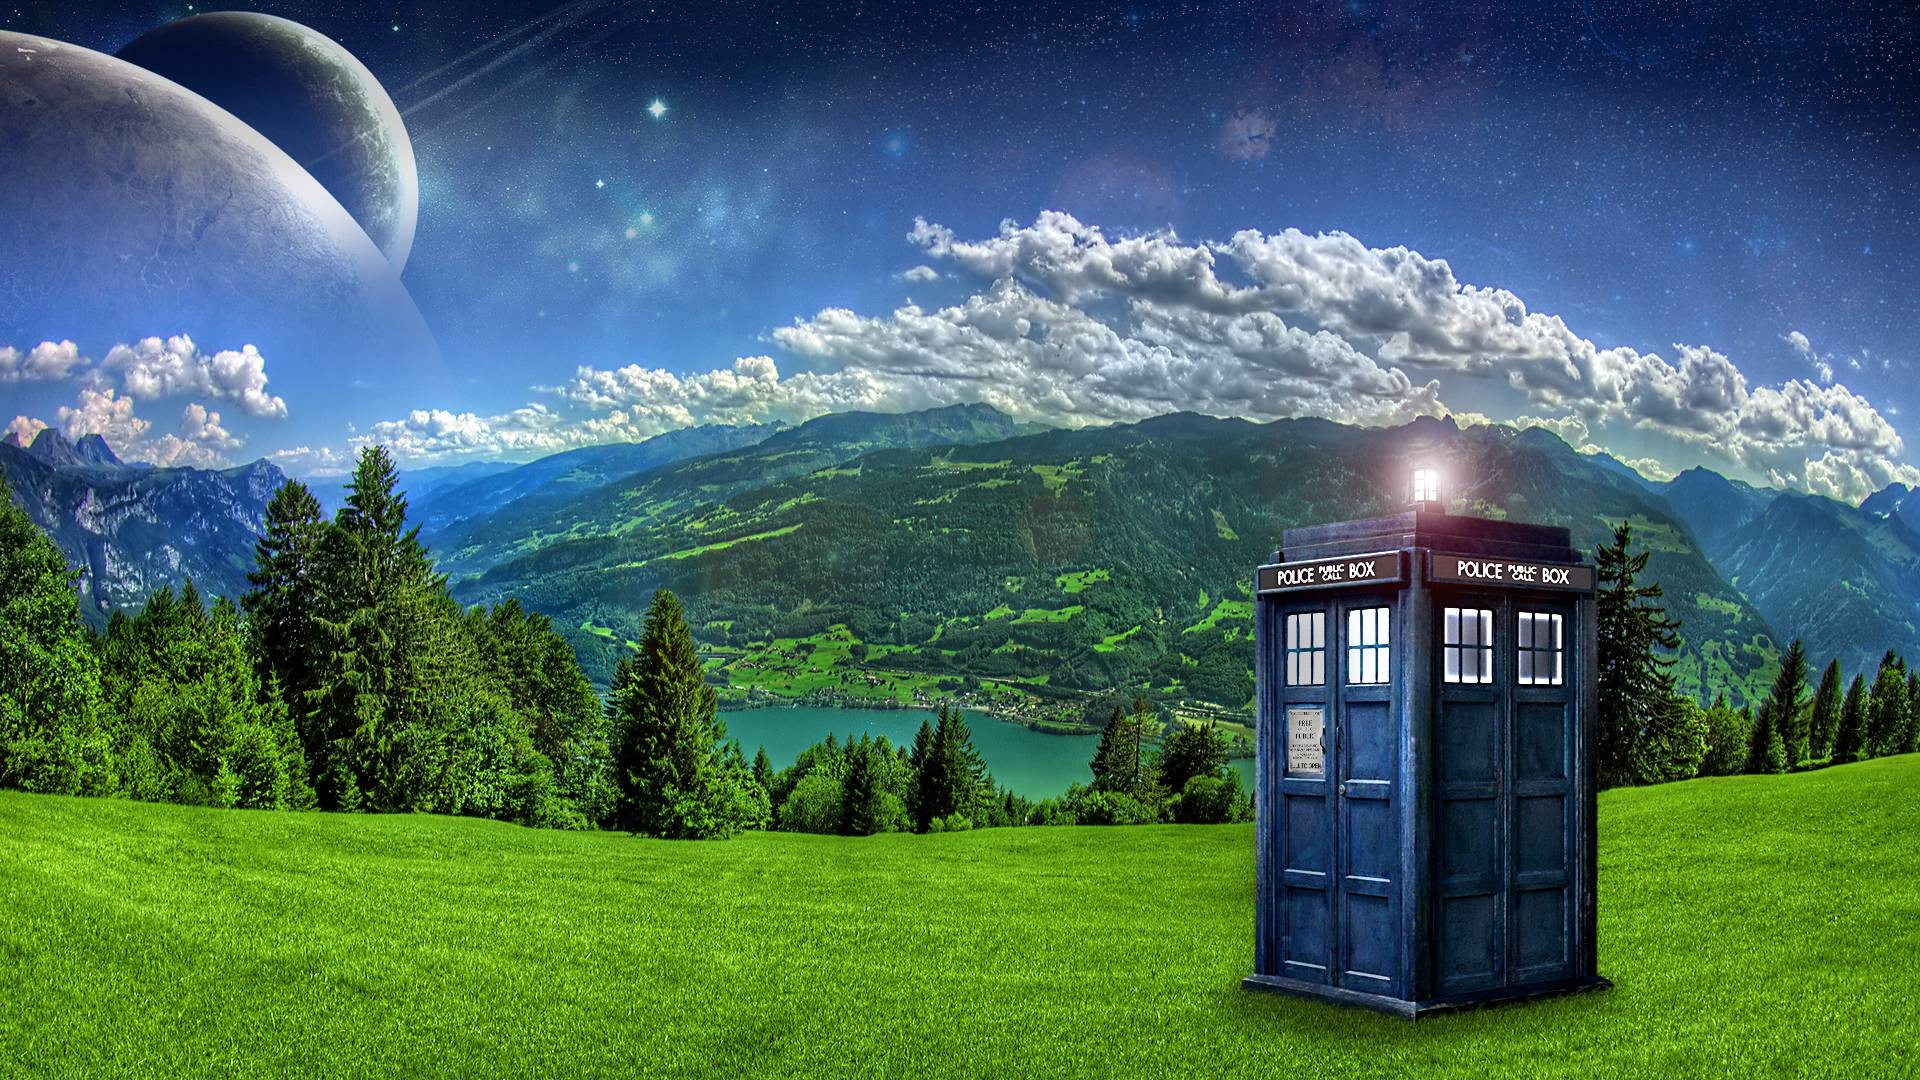 Res: 1920x1080, Wallpapers For > Doctor Who Wallpapers Tardis